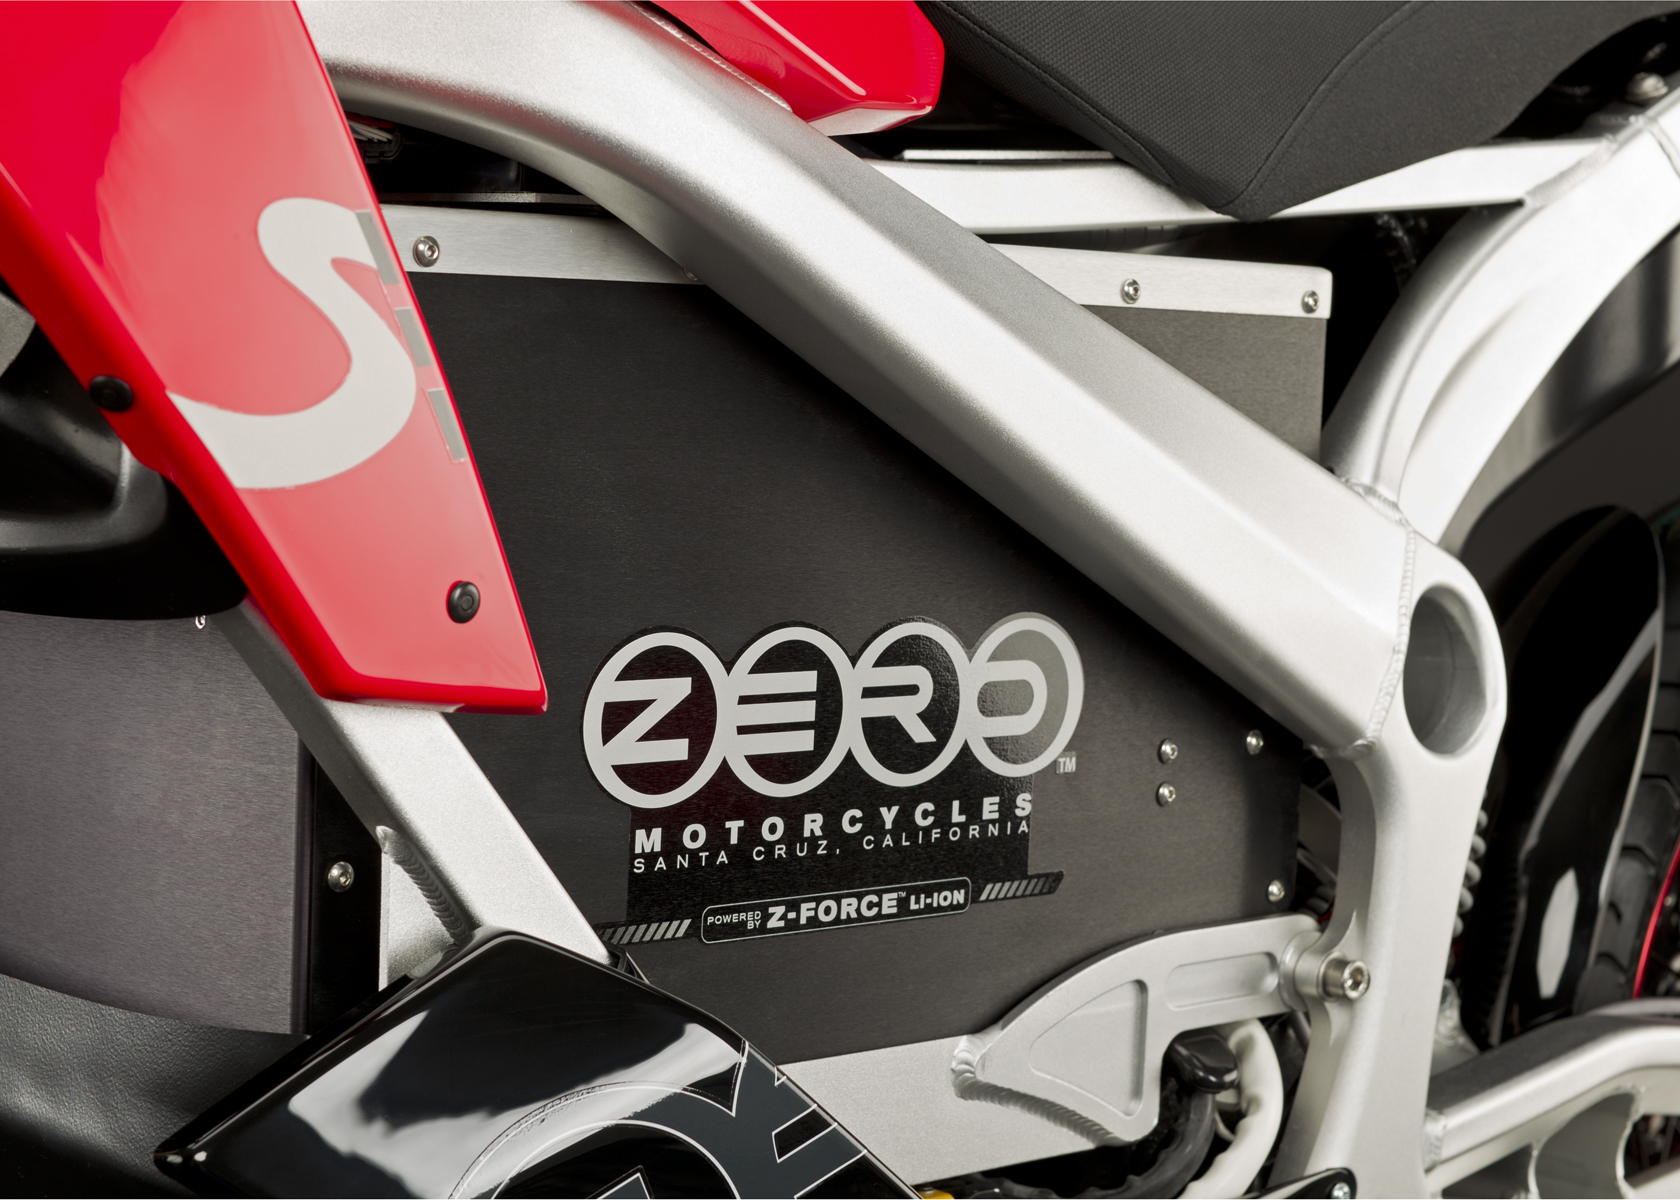 2011 Zero S Electric Motorcycle: Battery